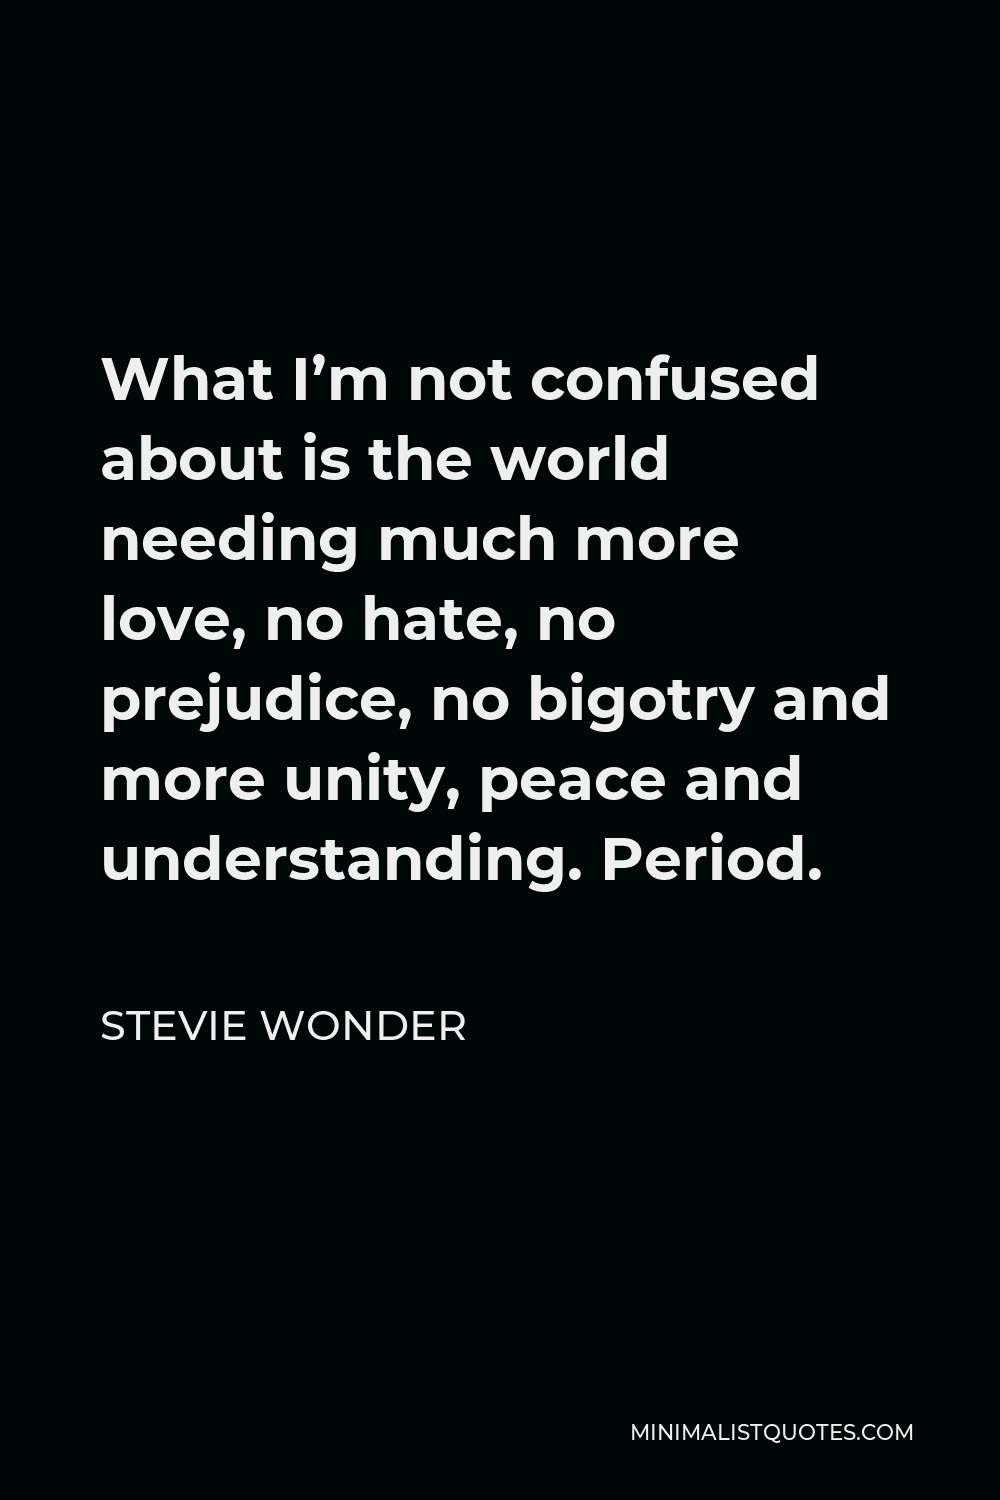 Stevie Wonder Quote - What I'm not confused about is the world needing much more love, no hate, no prejudice, no bigotry and more unity, peace and understanding. Period.